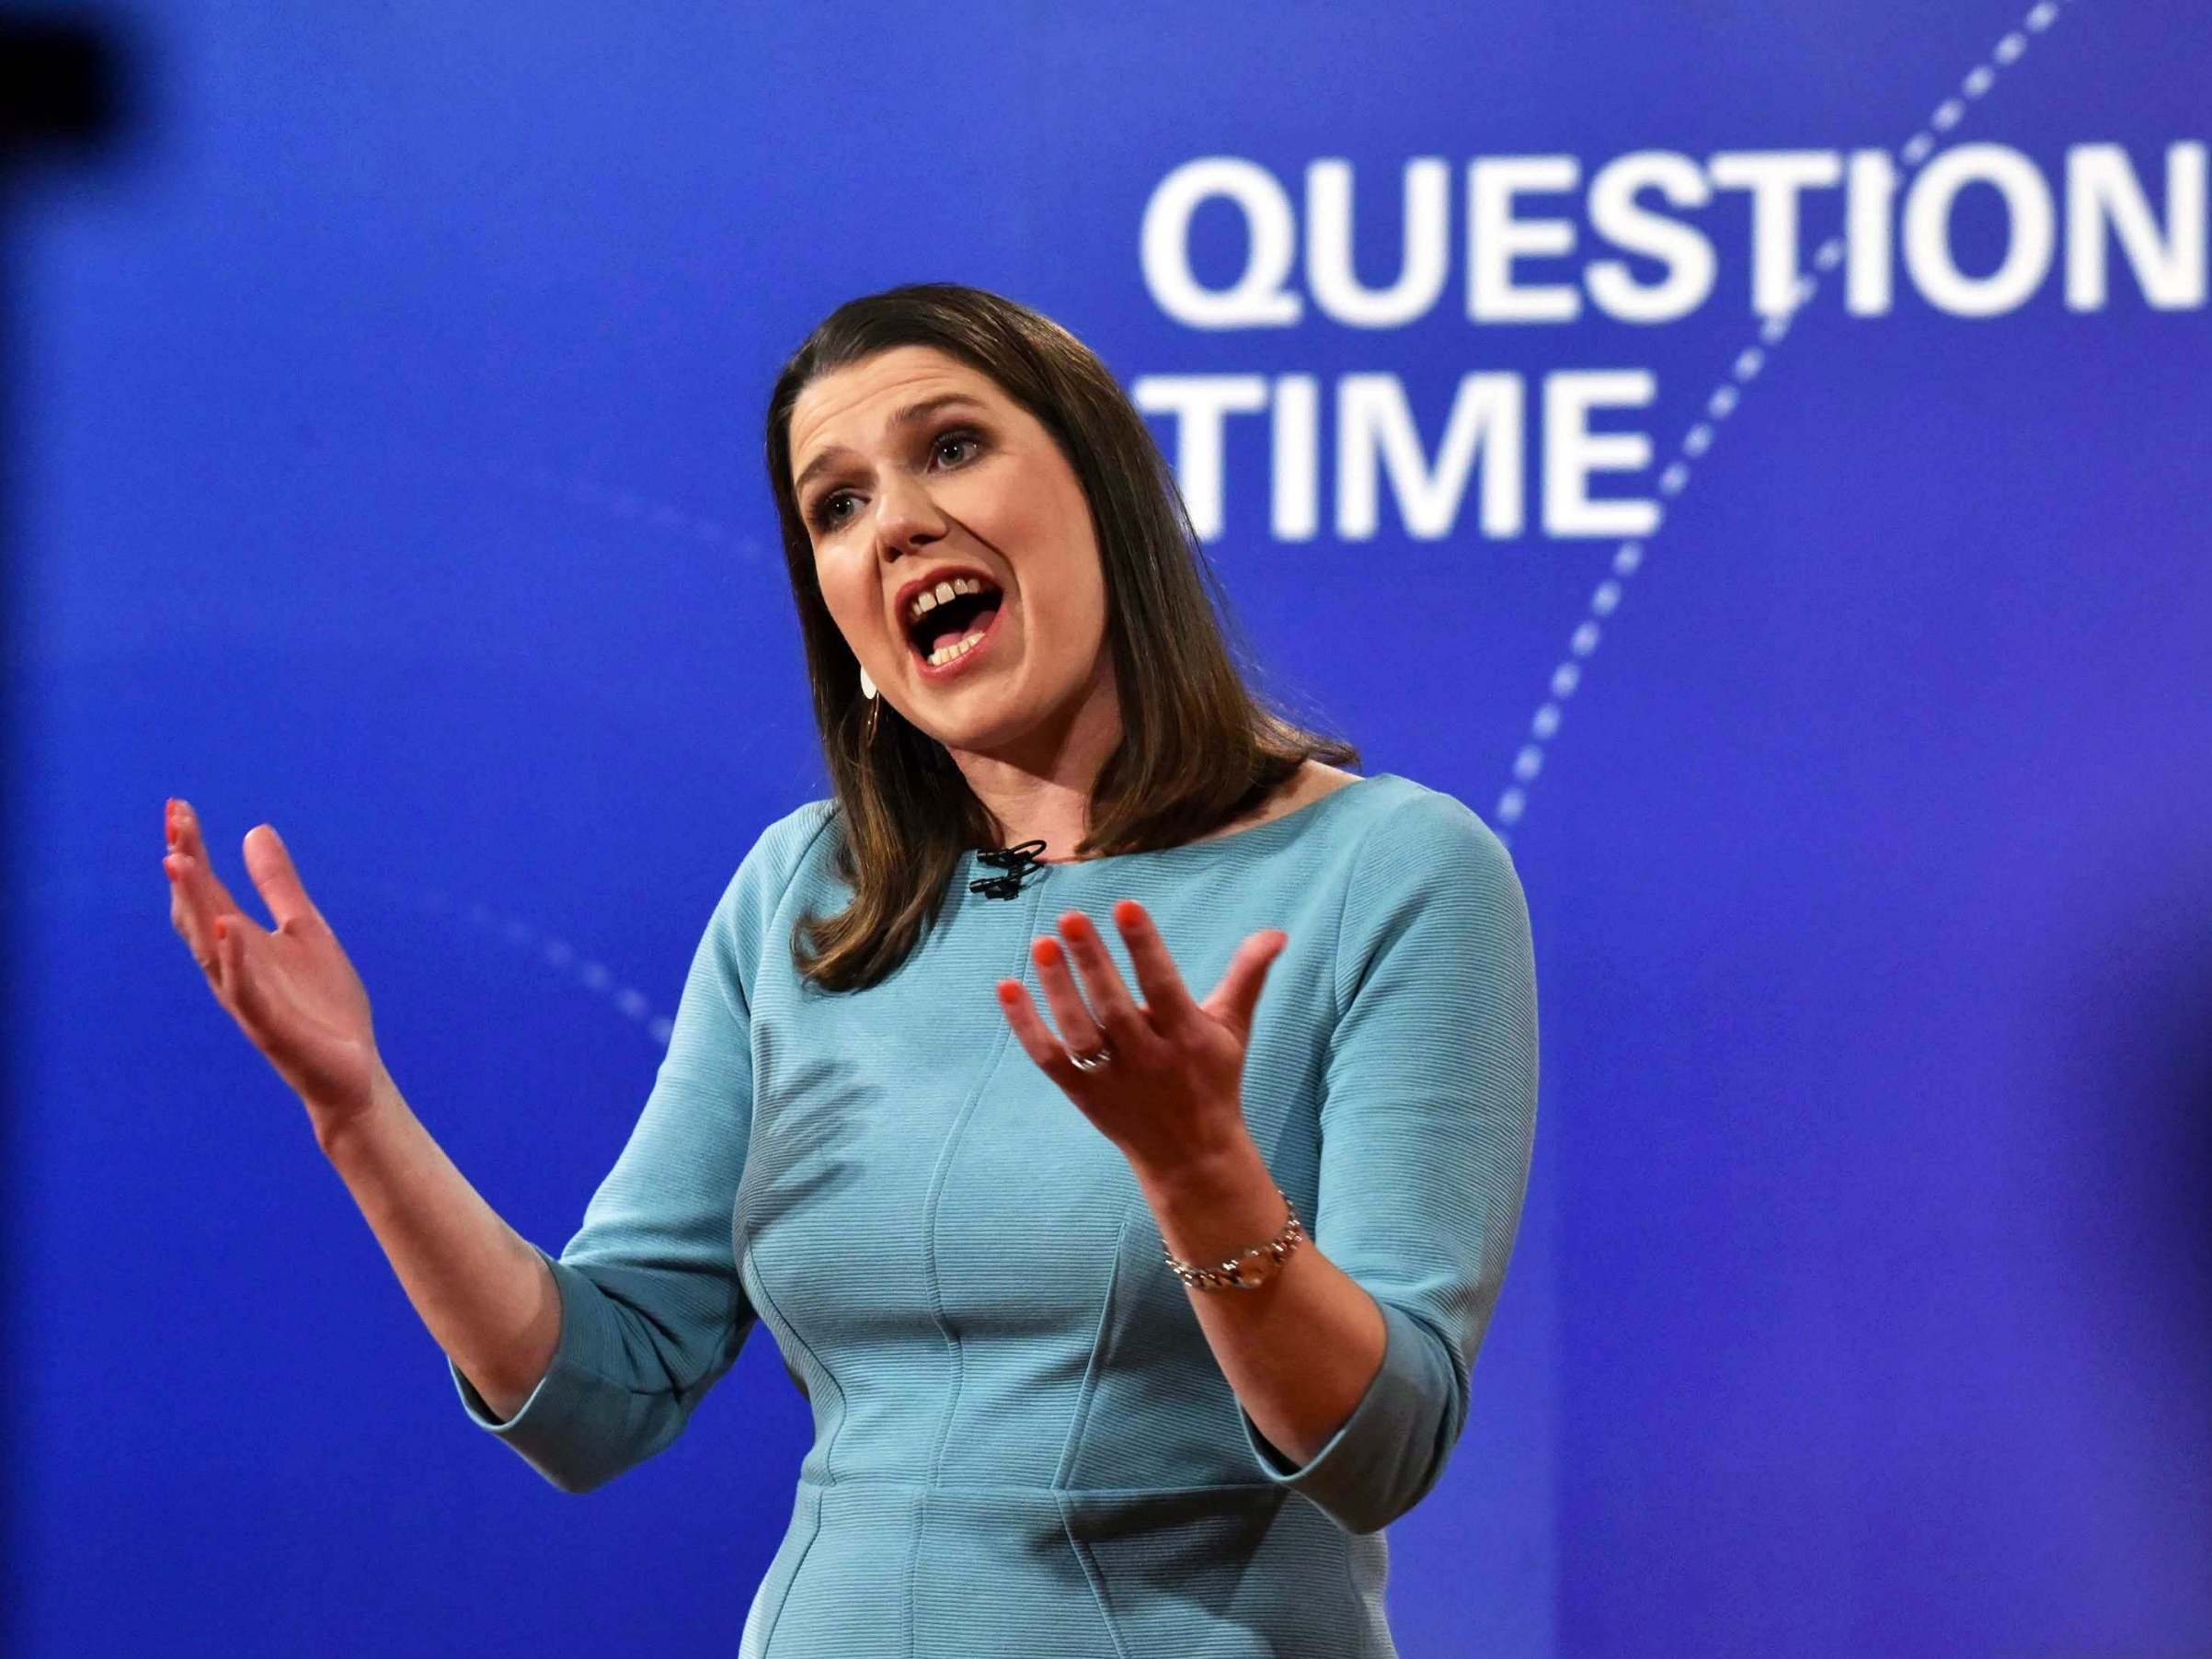 Question Time debate: Jo Swinson admits Lib Dem bar charts 'should be accurately labelled'